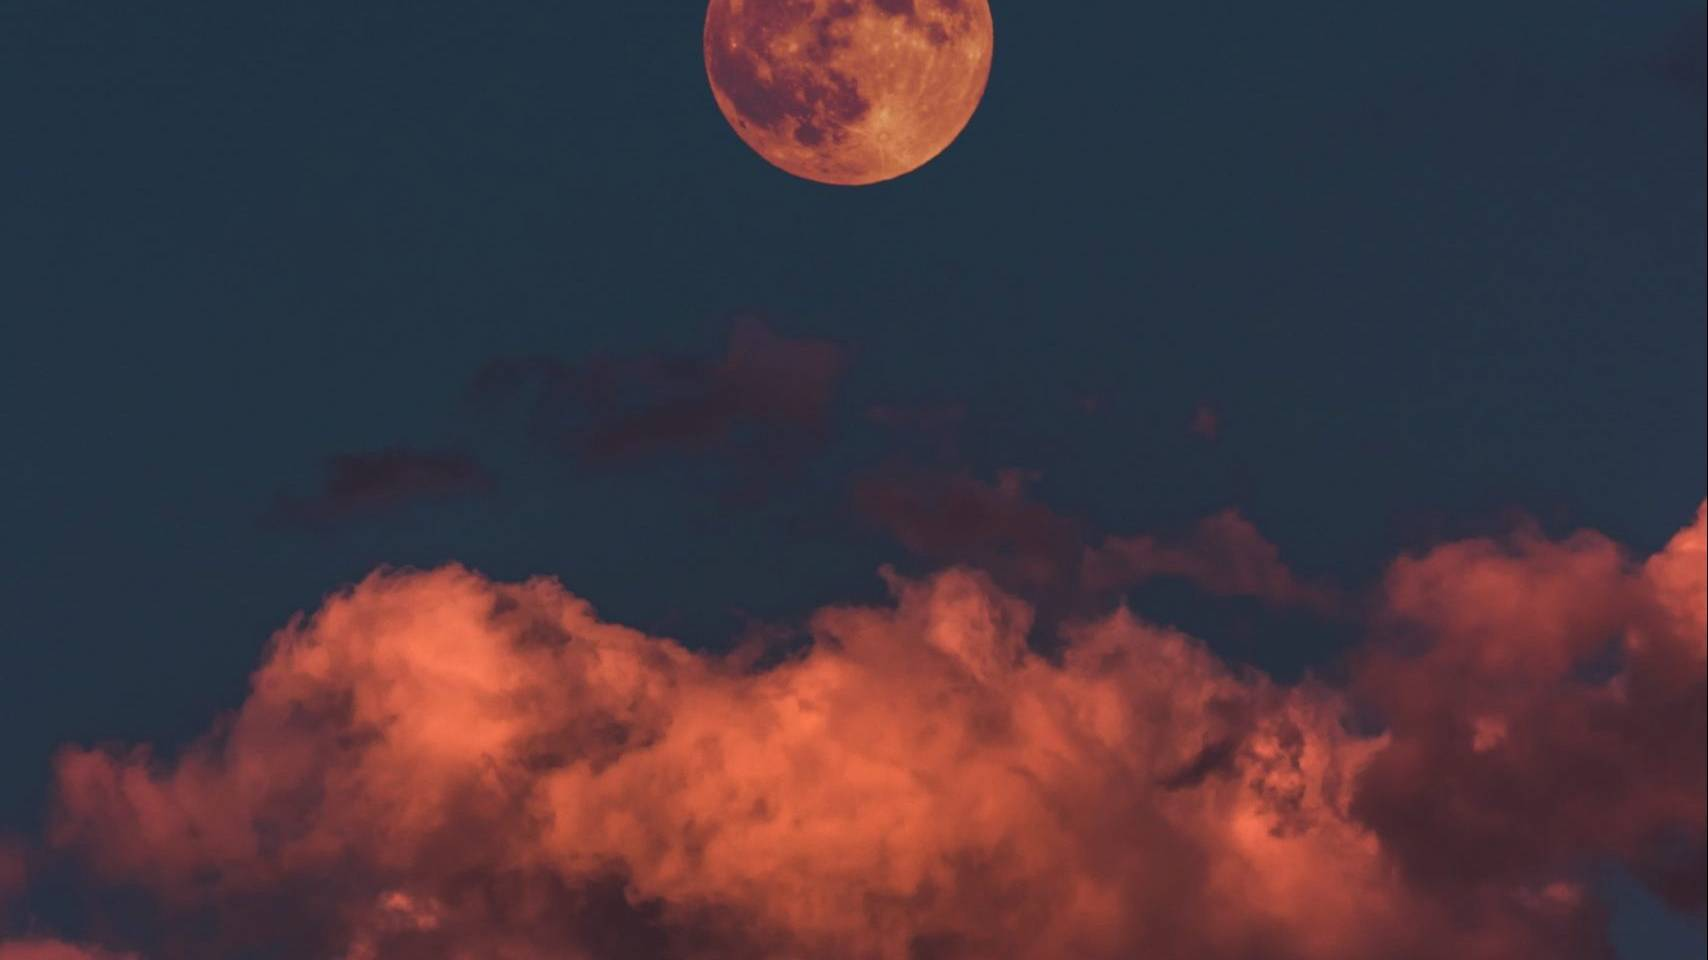 the moon and colorful sky